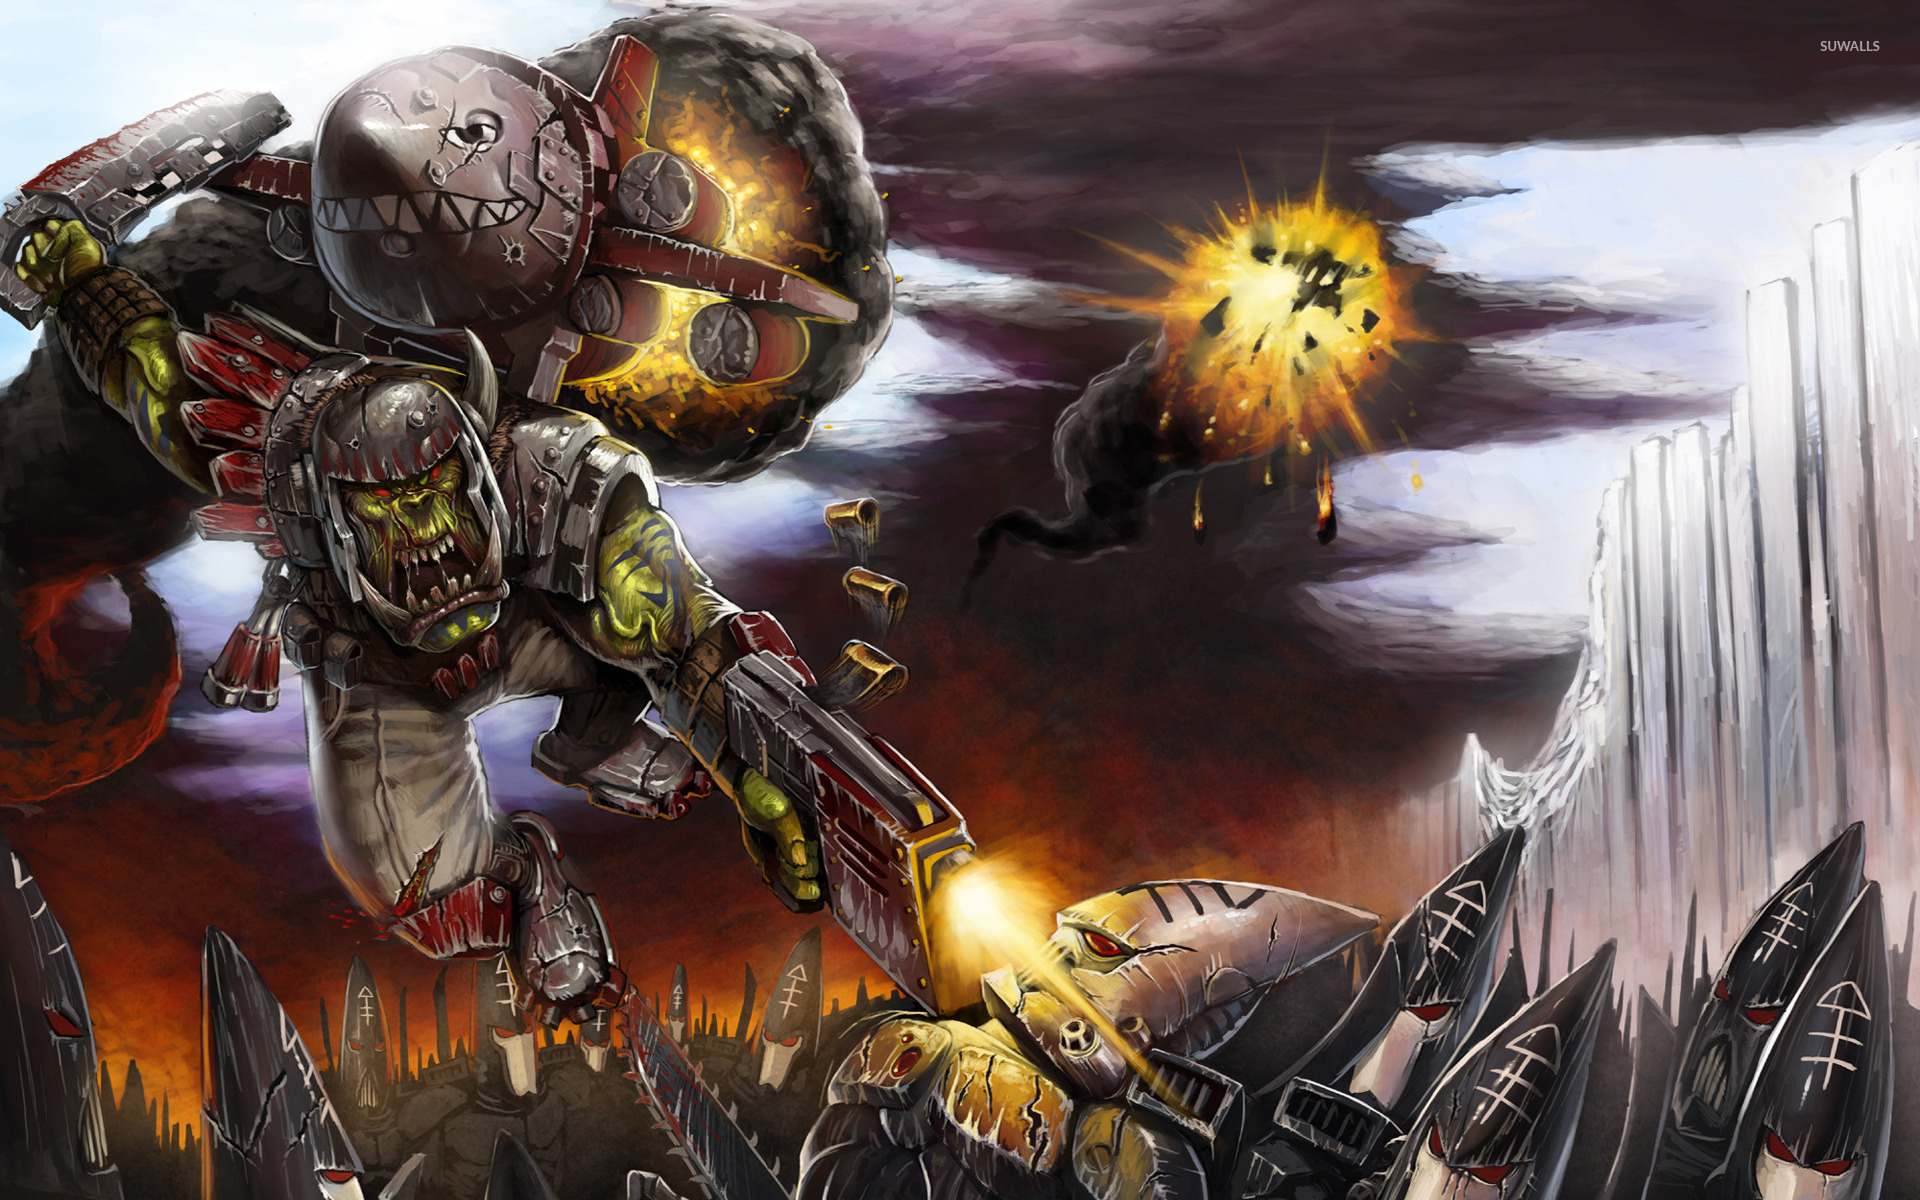 Desktop Wallpaper Fall Out Warhammer 40 000 Space Marine 7 Wallpaper Game